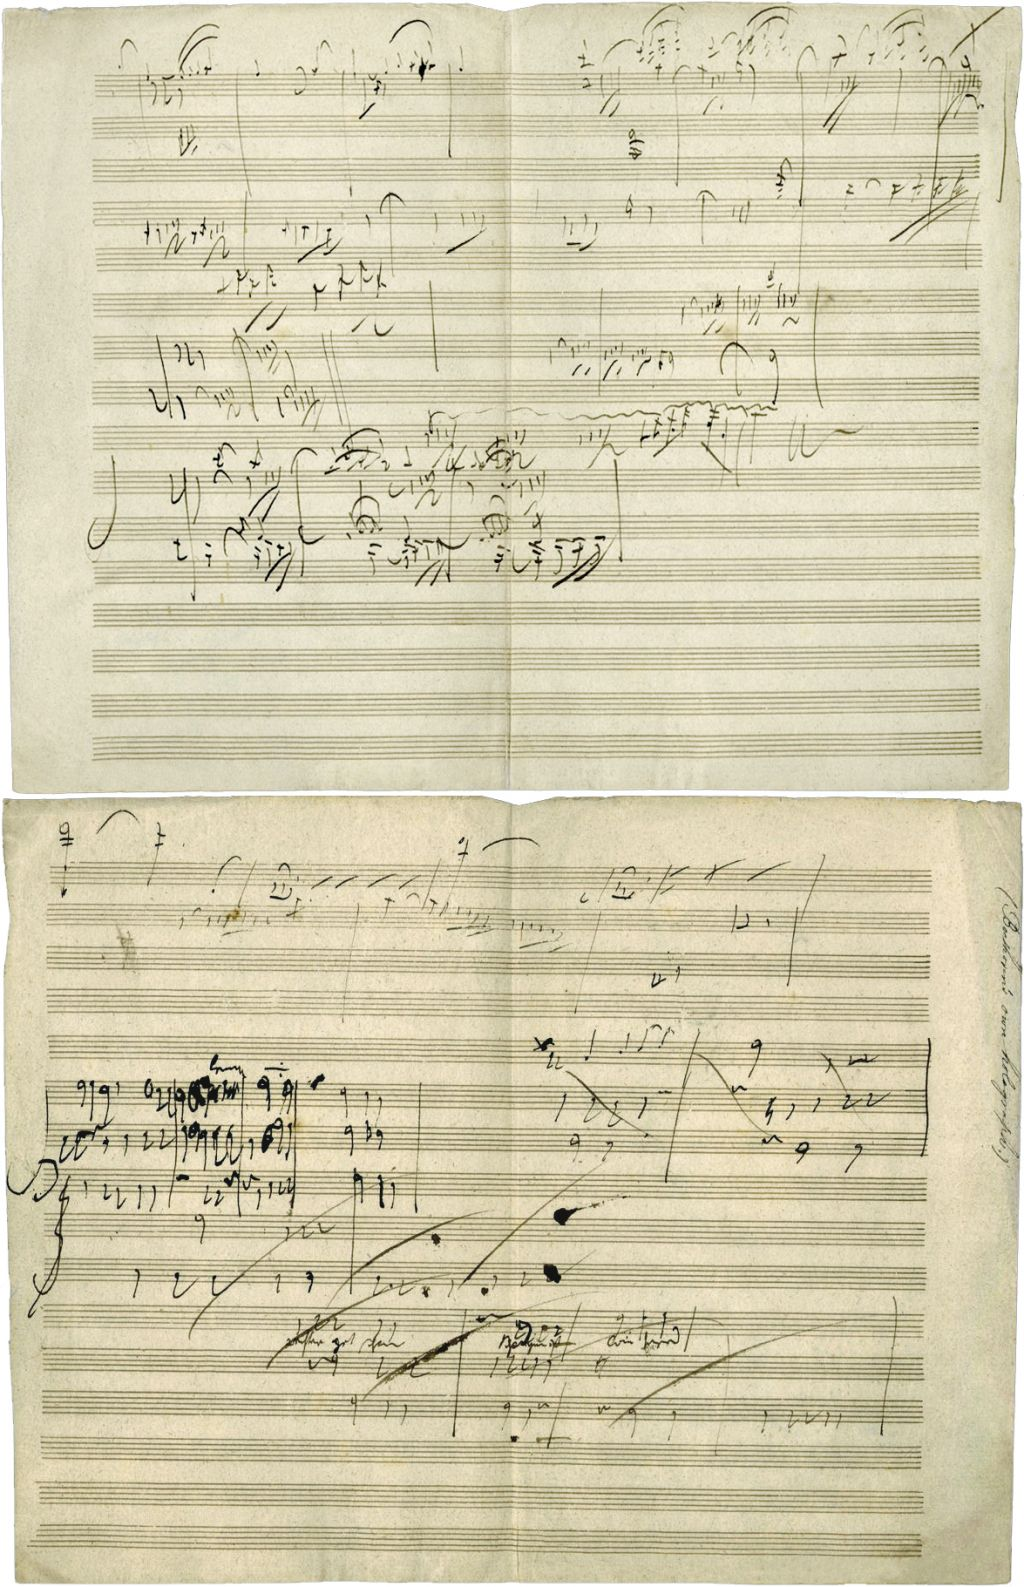 an analysis of the beethovens piano sonata 14 Op 14 no 1 is the only sonata beethoven ever arranged for string quartet, and his decision to undertake the transcription in 1802 was surely motivated by the special affinity nun wollen wir die außerordentliche gelegenheit benutzen, jene interpretation zum vergleich heranzuziehen, die beethoven selber seiner sonate.